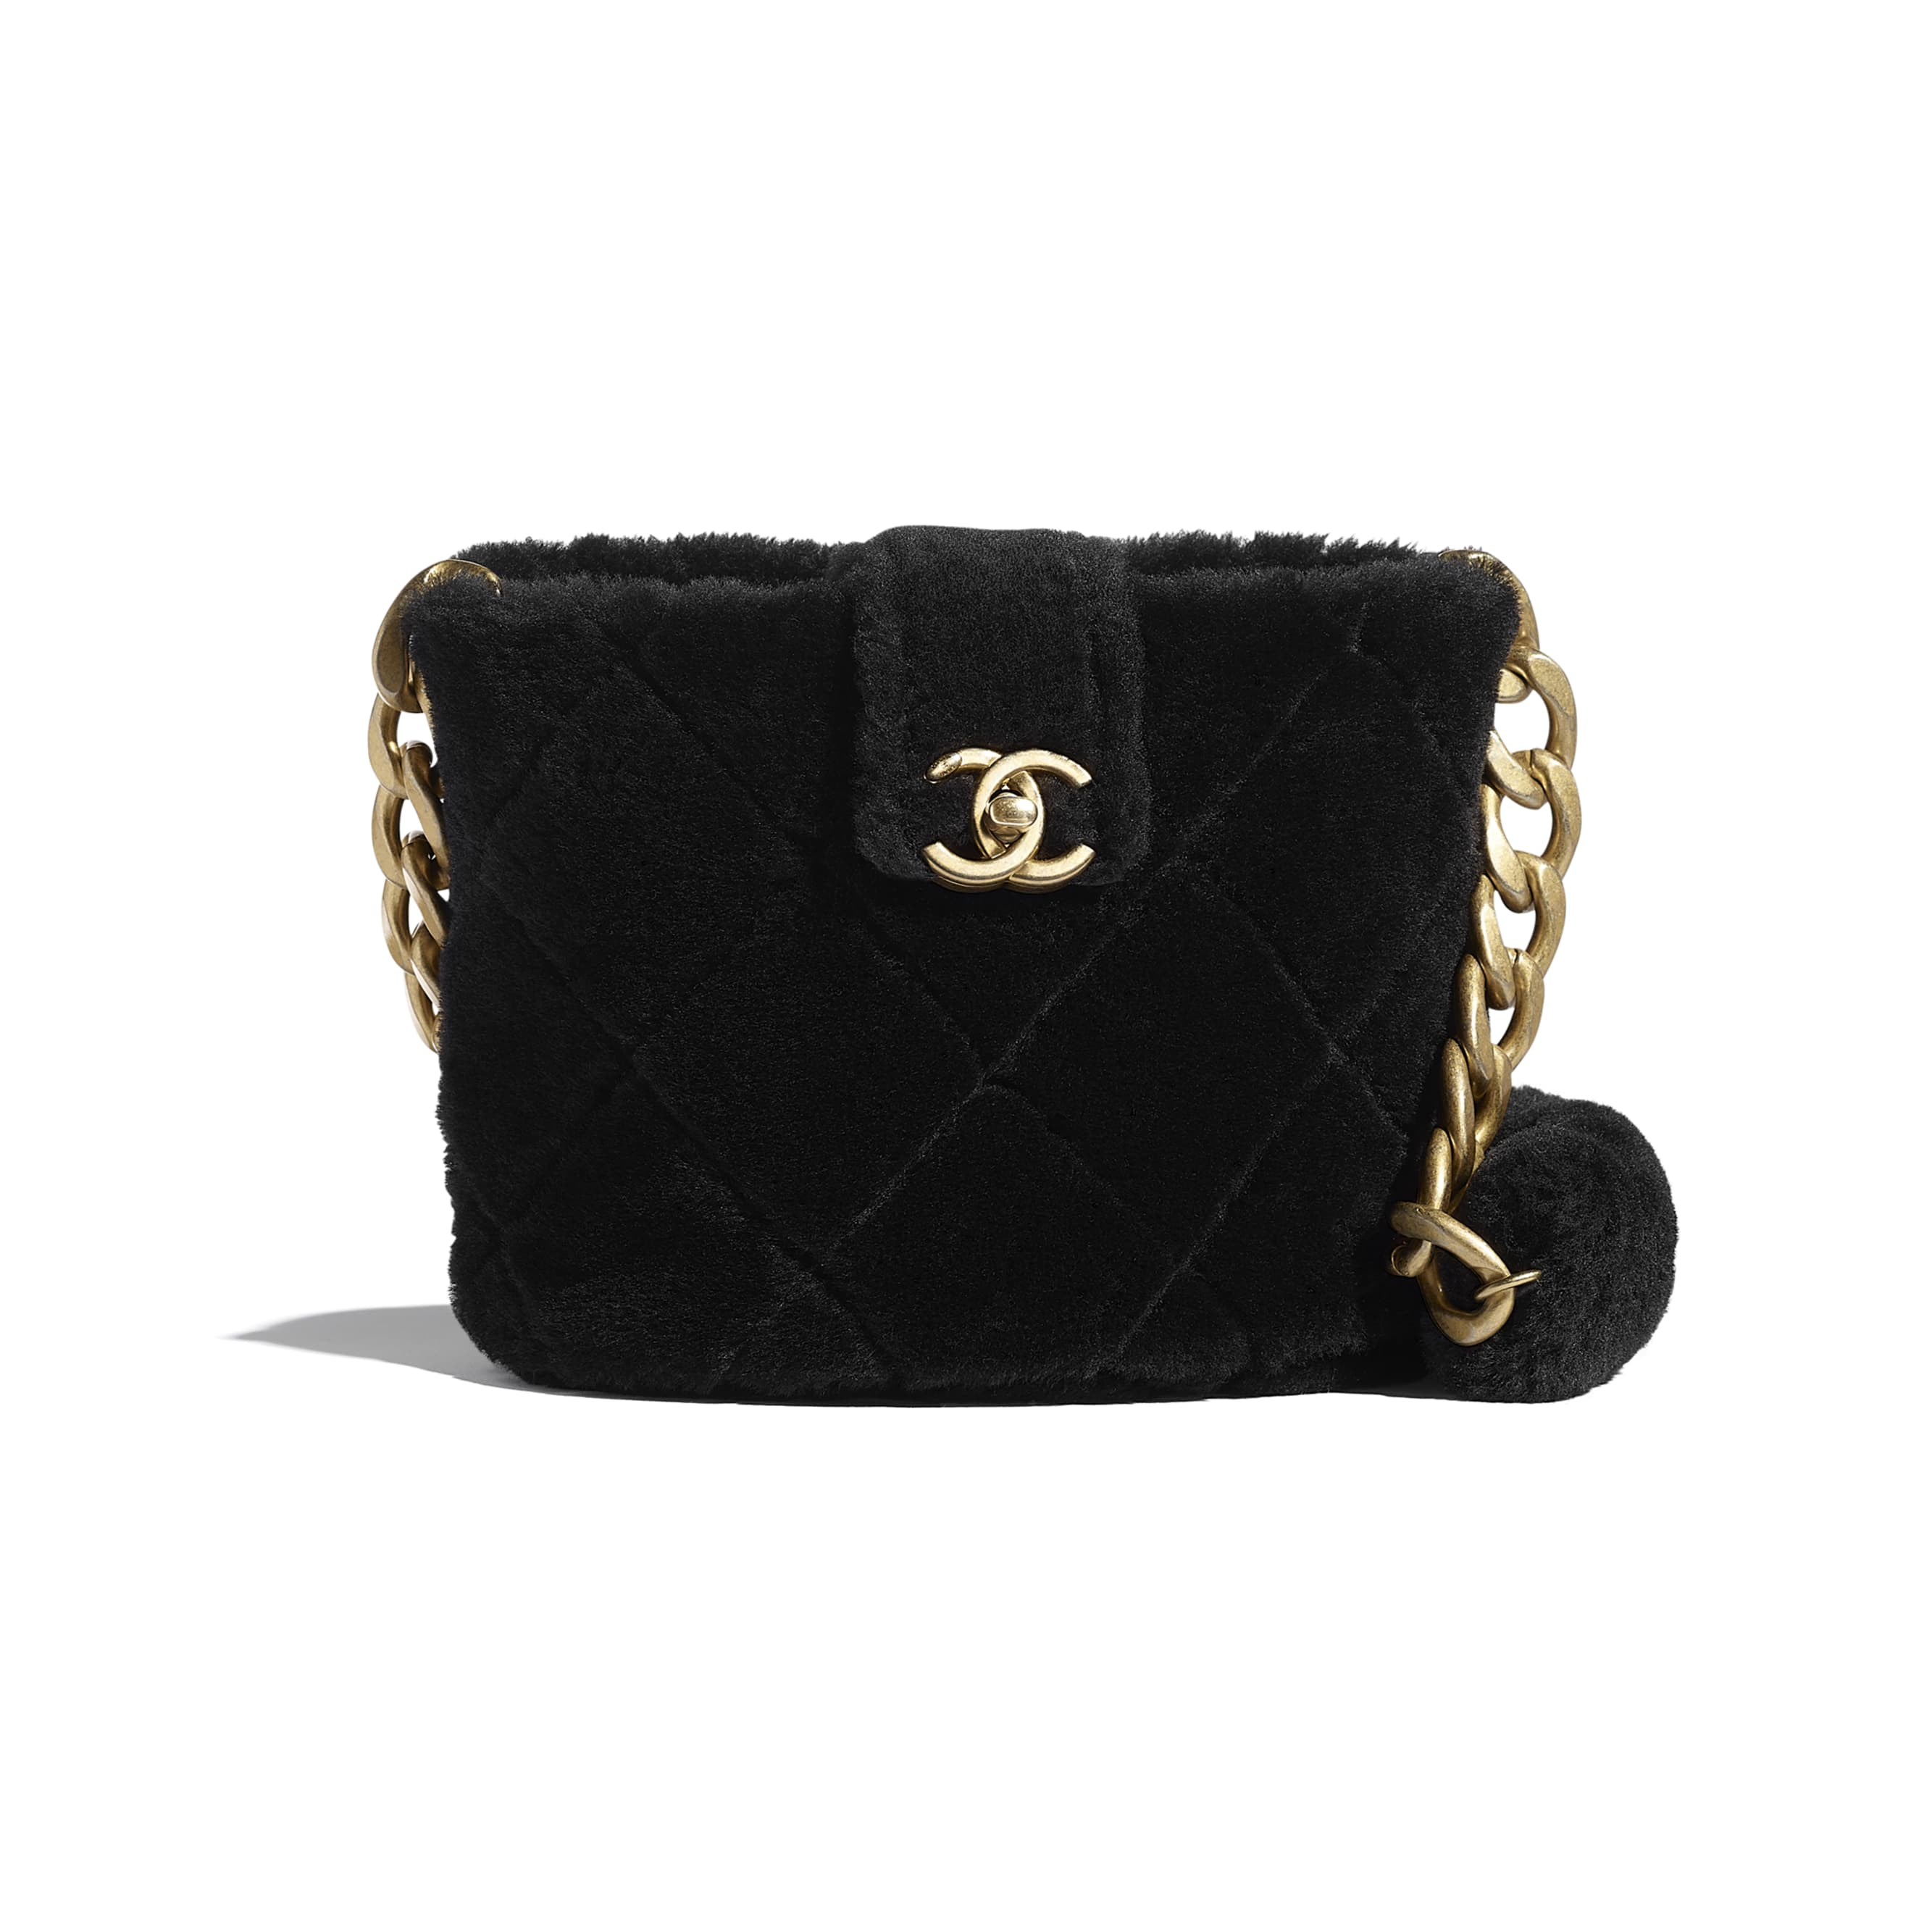 Bucket Bag - Black - Shearling Lambskin & Gold-Tone Metal - CHANEL - Default view - see standard sized version